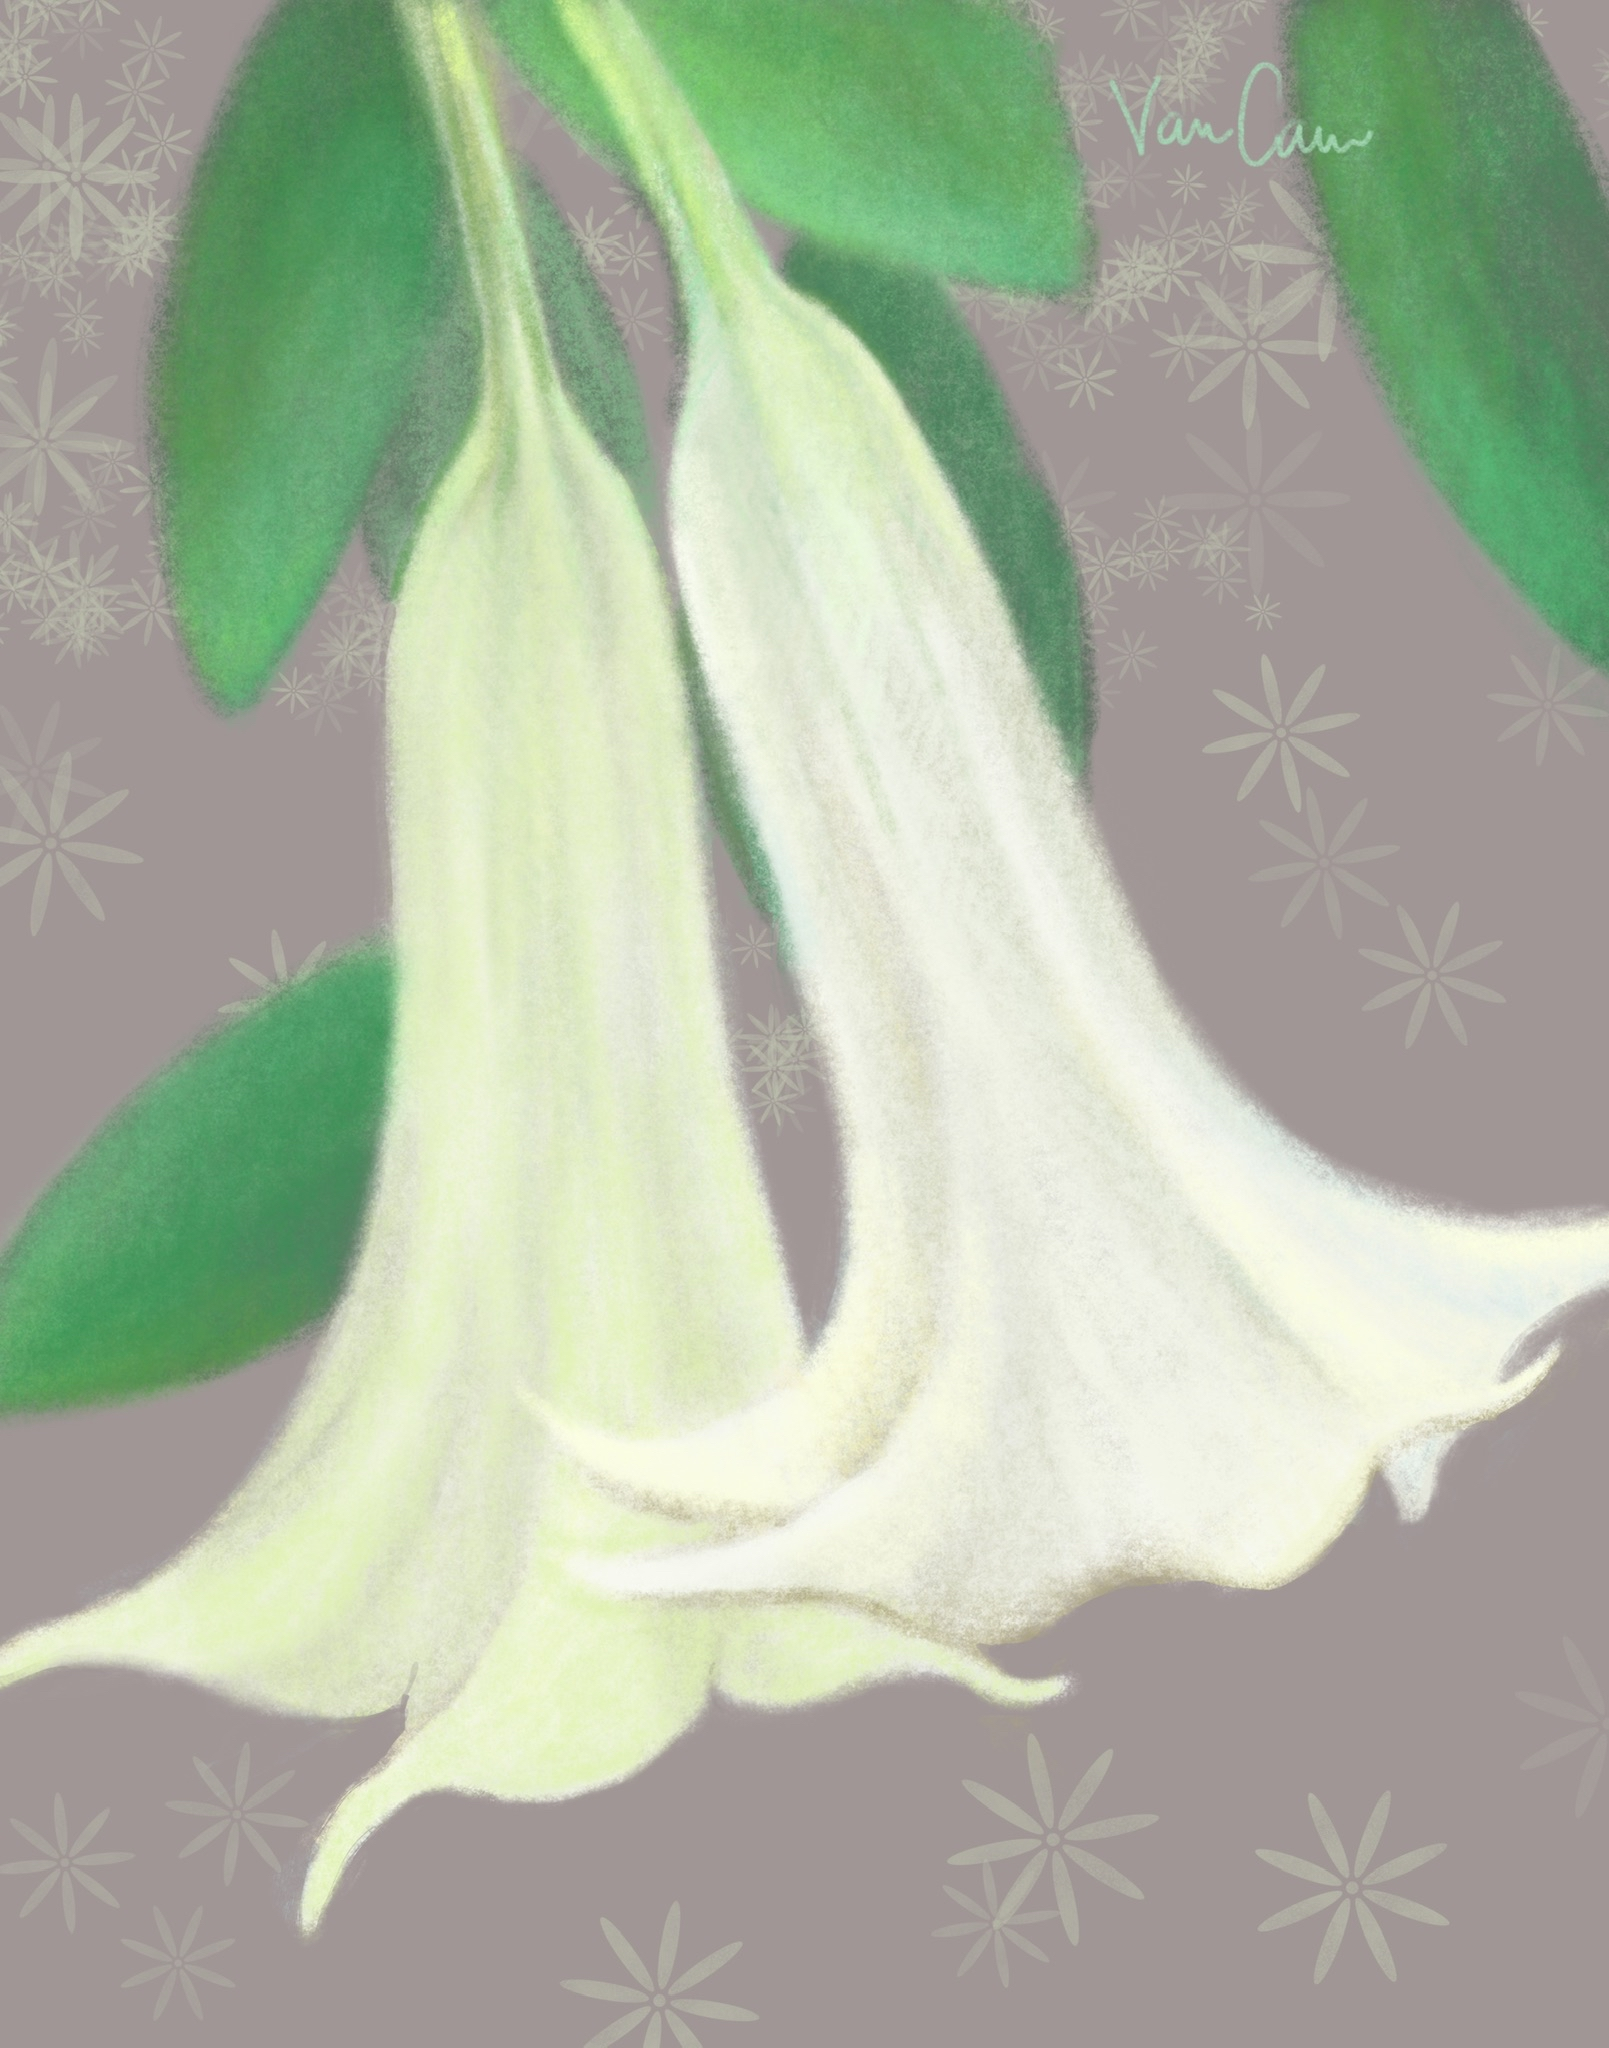 White Trumpet Tree Flowers Digital Painting